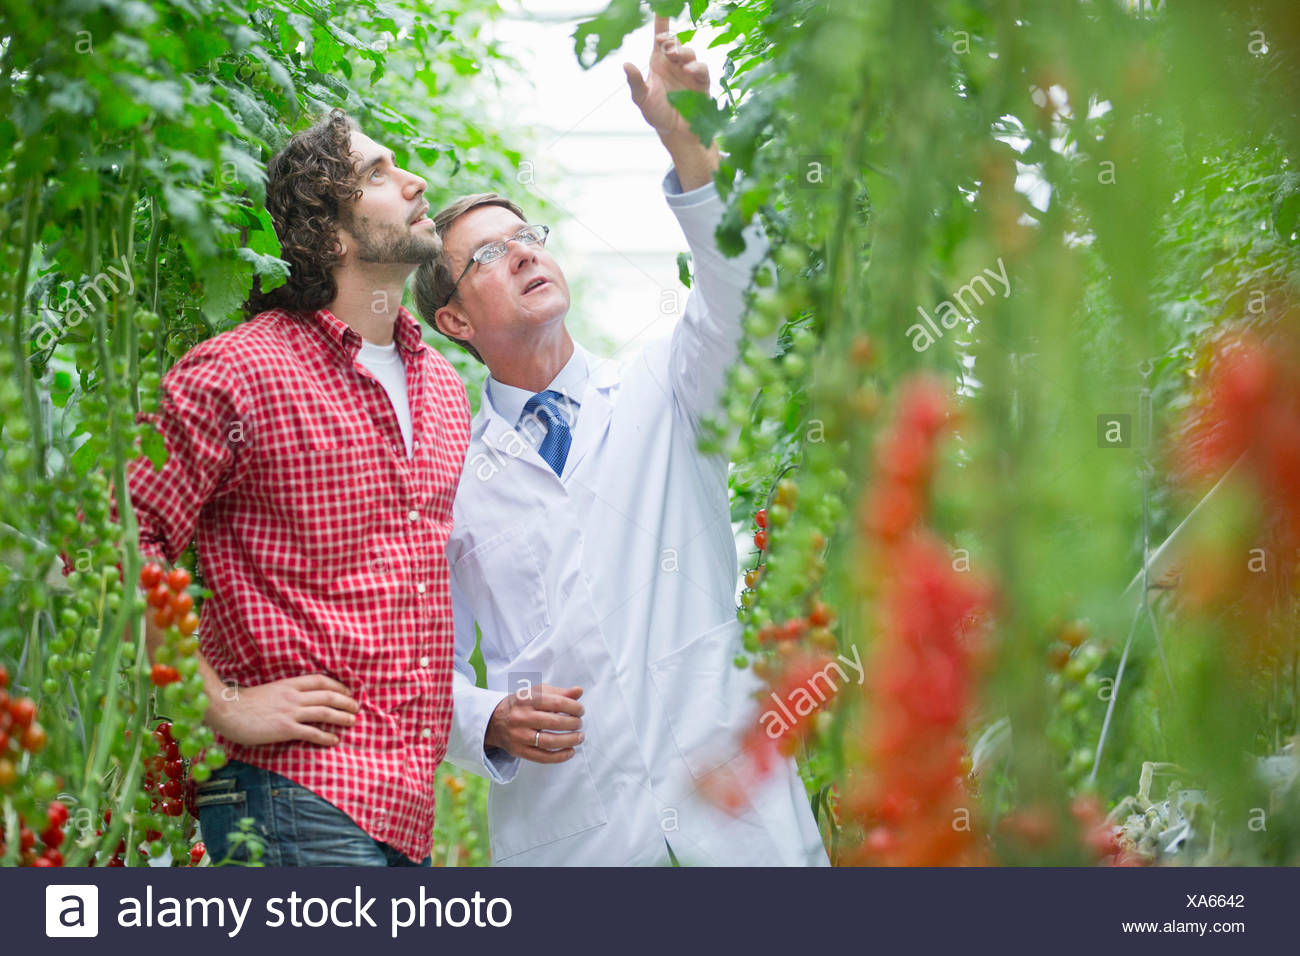 Food scientist and grower looking up inspecting tomato plants in greenhouse - Stock Image